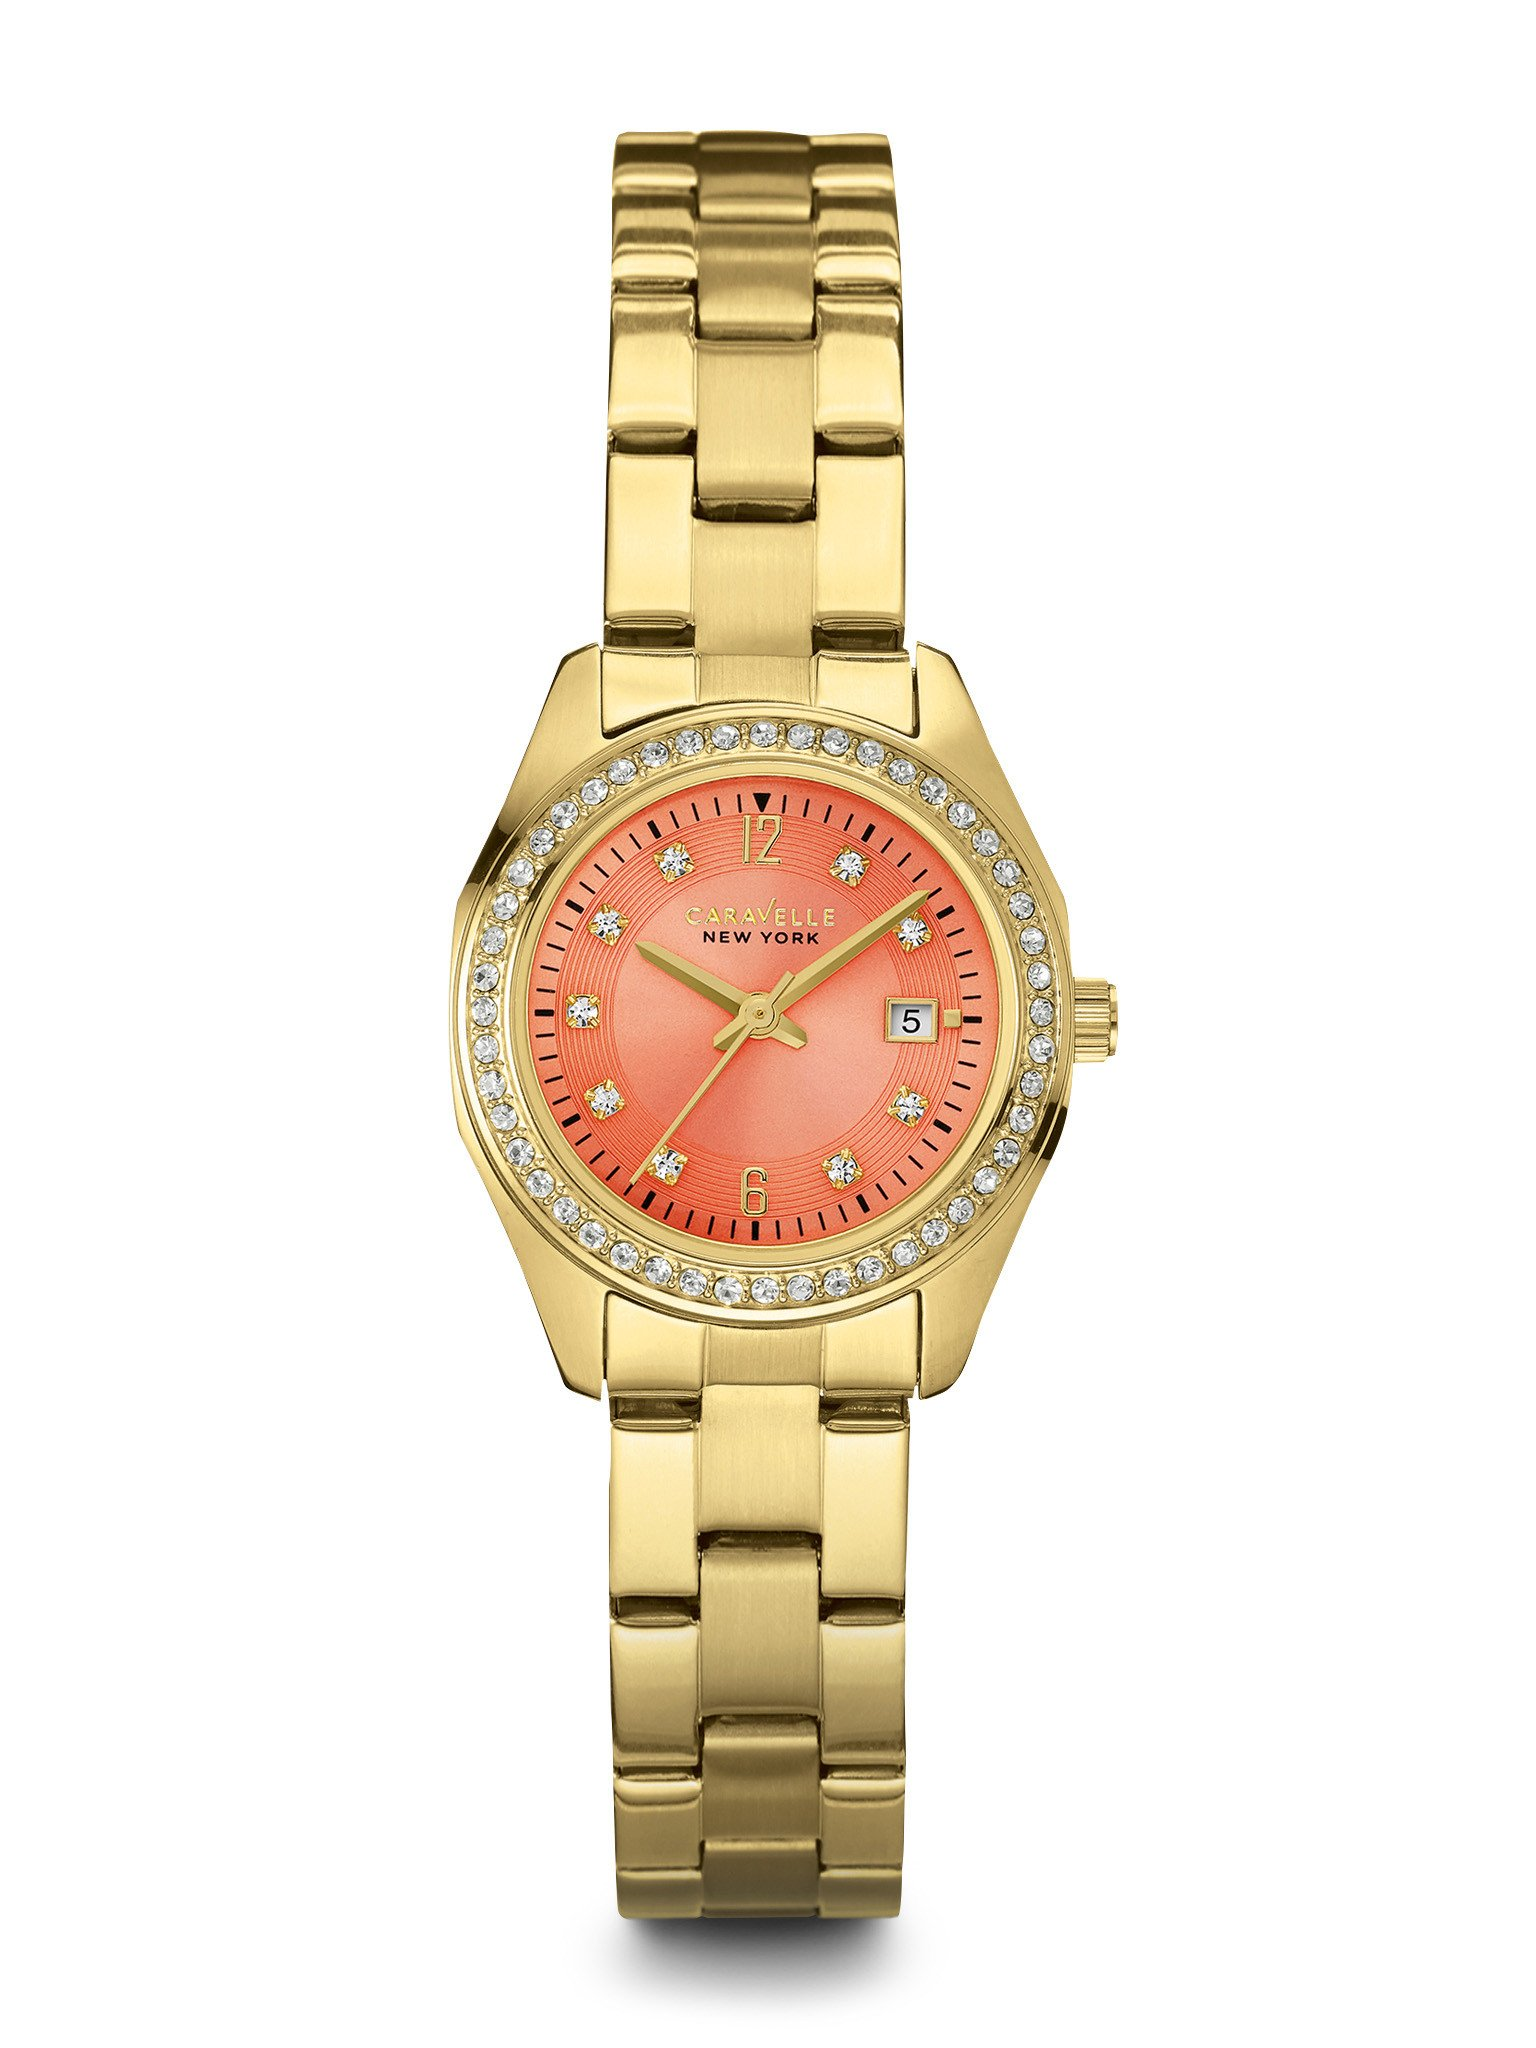 New York watch for women - Melon-colored dial with crystal accents